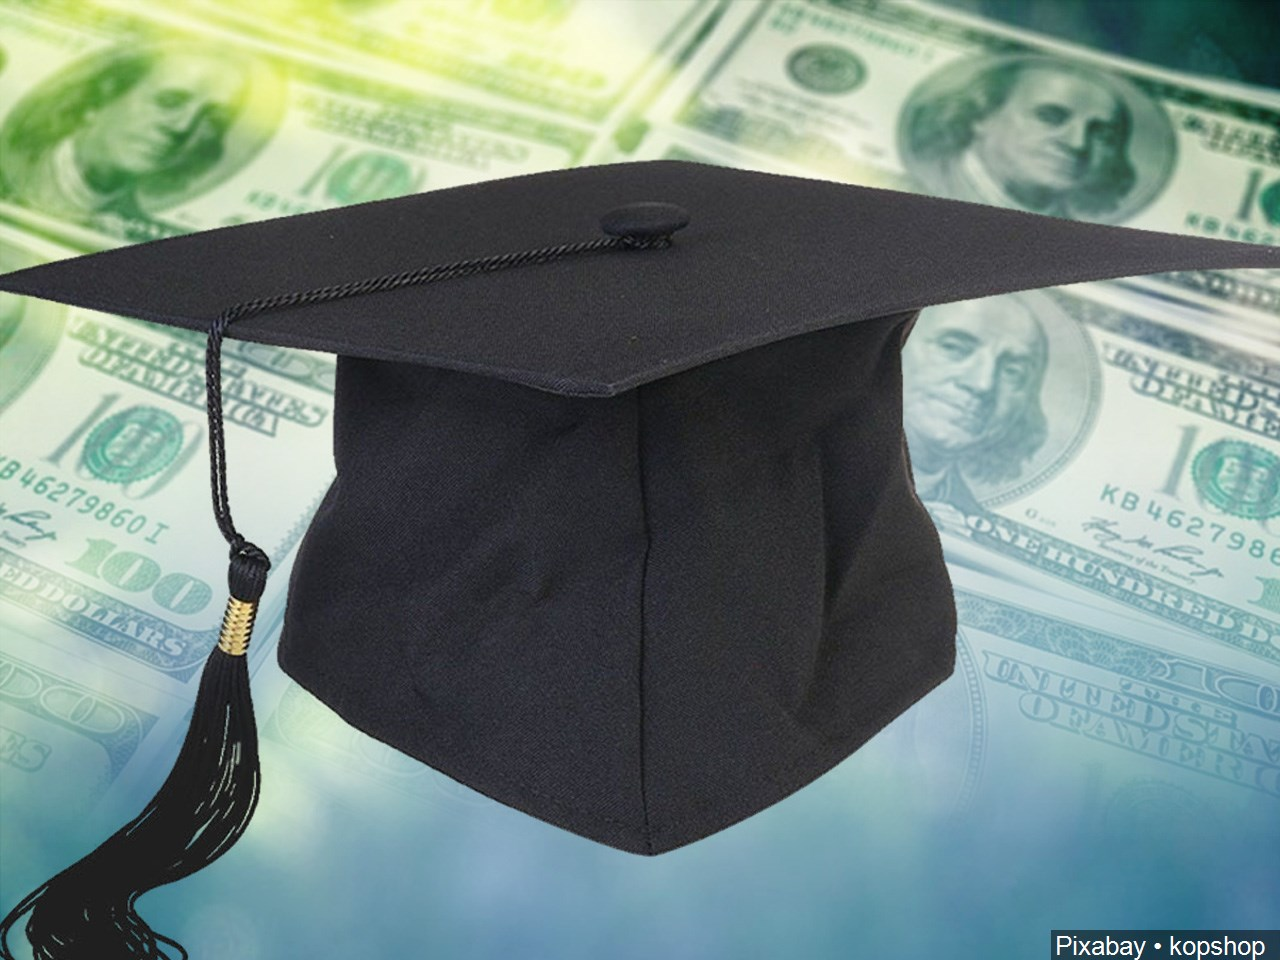 A local foundation wants to remind prospective students of the upcoming deadline for a debt-free tuition scholarship to attend New River Community College (NRCC).